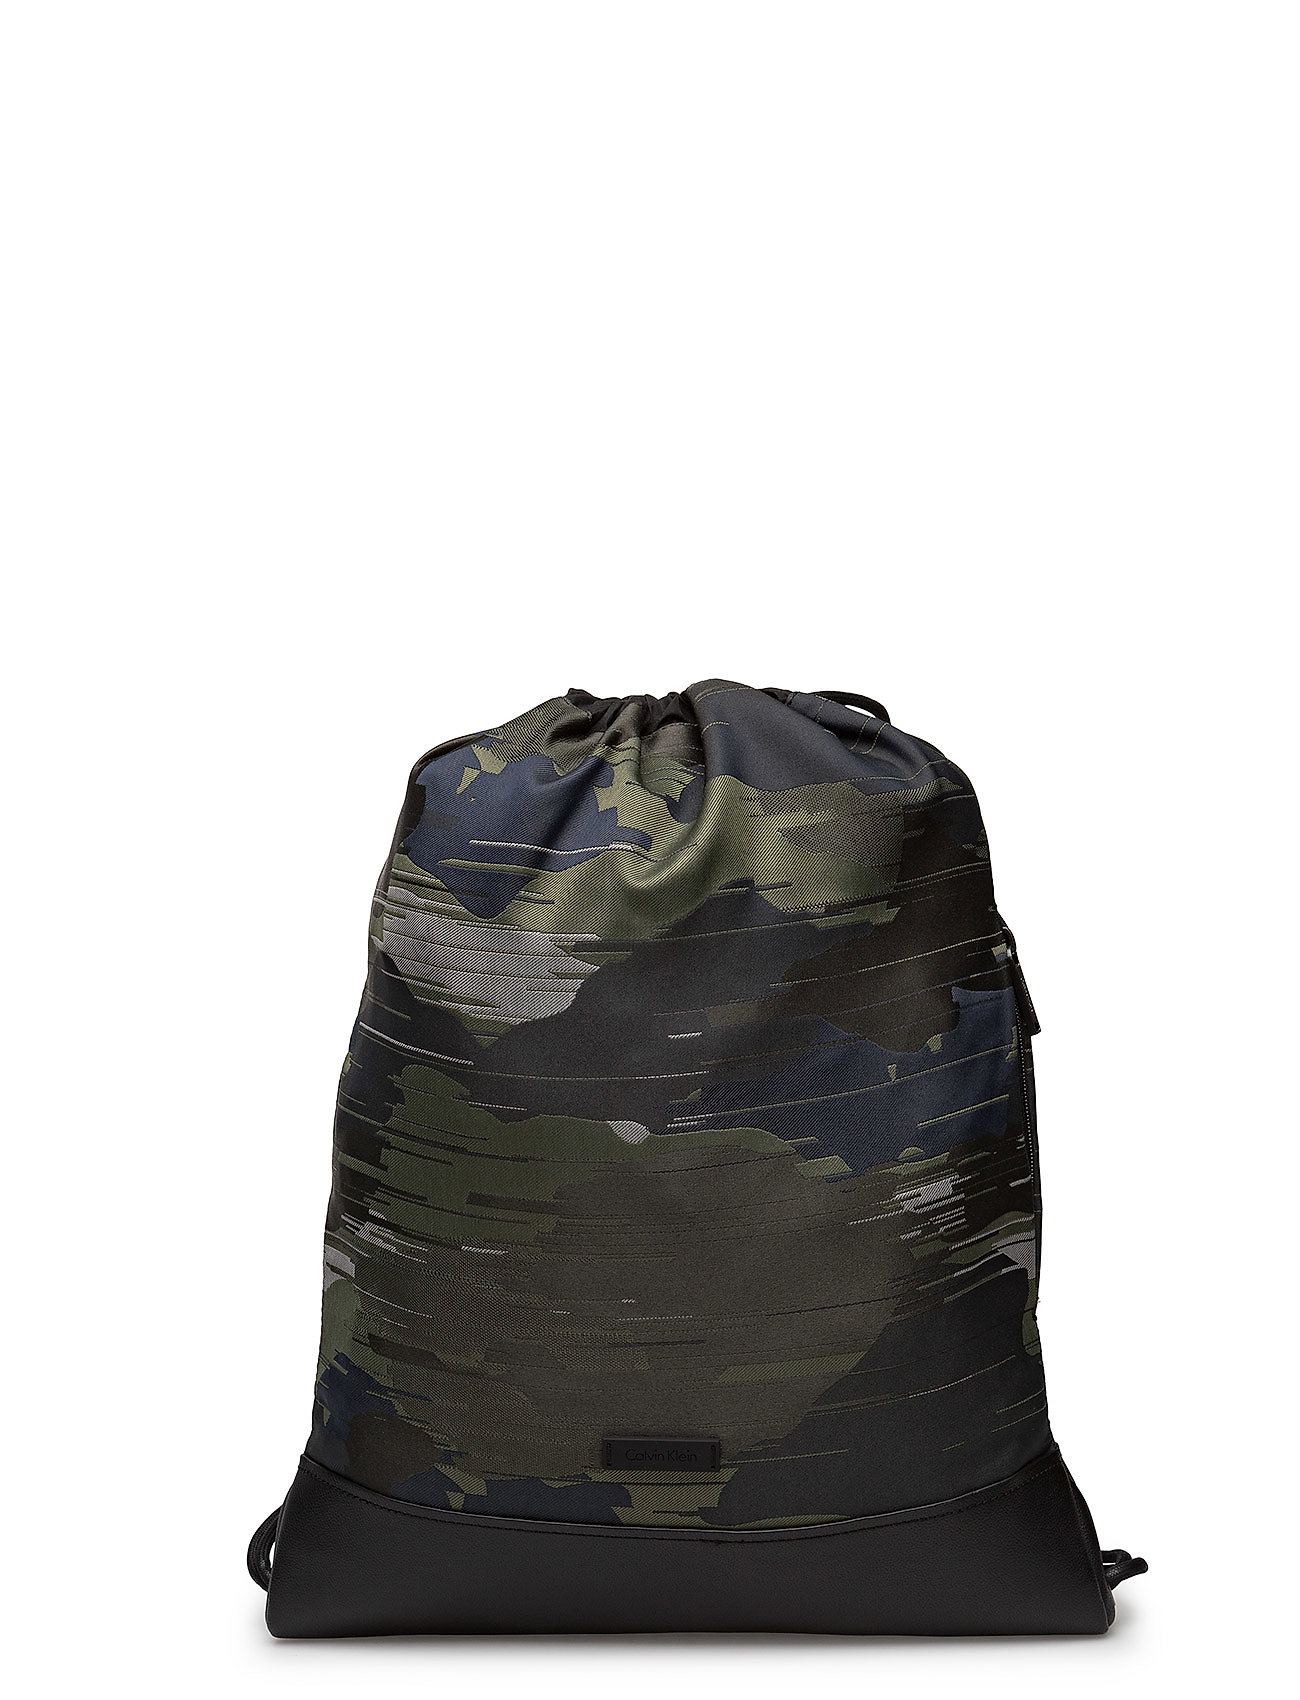 Calvin Klein FINTON FLAT BACKPACK - SPEED CAMO